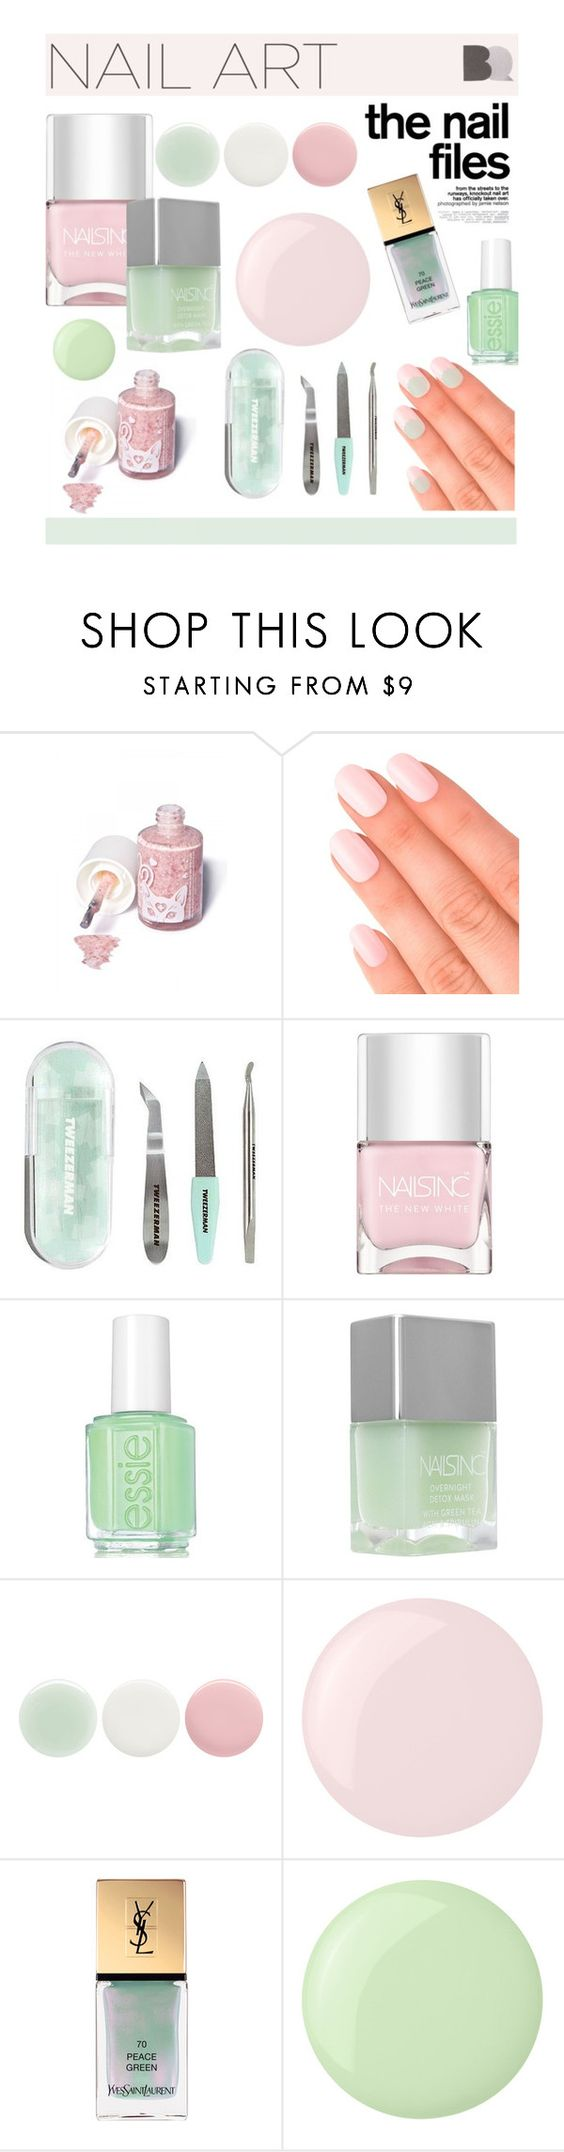 """#pinkandgreen"" by hellodollface ❤ liked on Polyvore featuring beauty, Sugarpill, Elegant Touch, Tweezerman, Nails Inc., Essie, Yves Saint Laurent, nail and pinkandgreen"